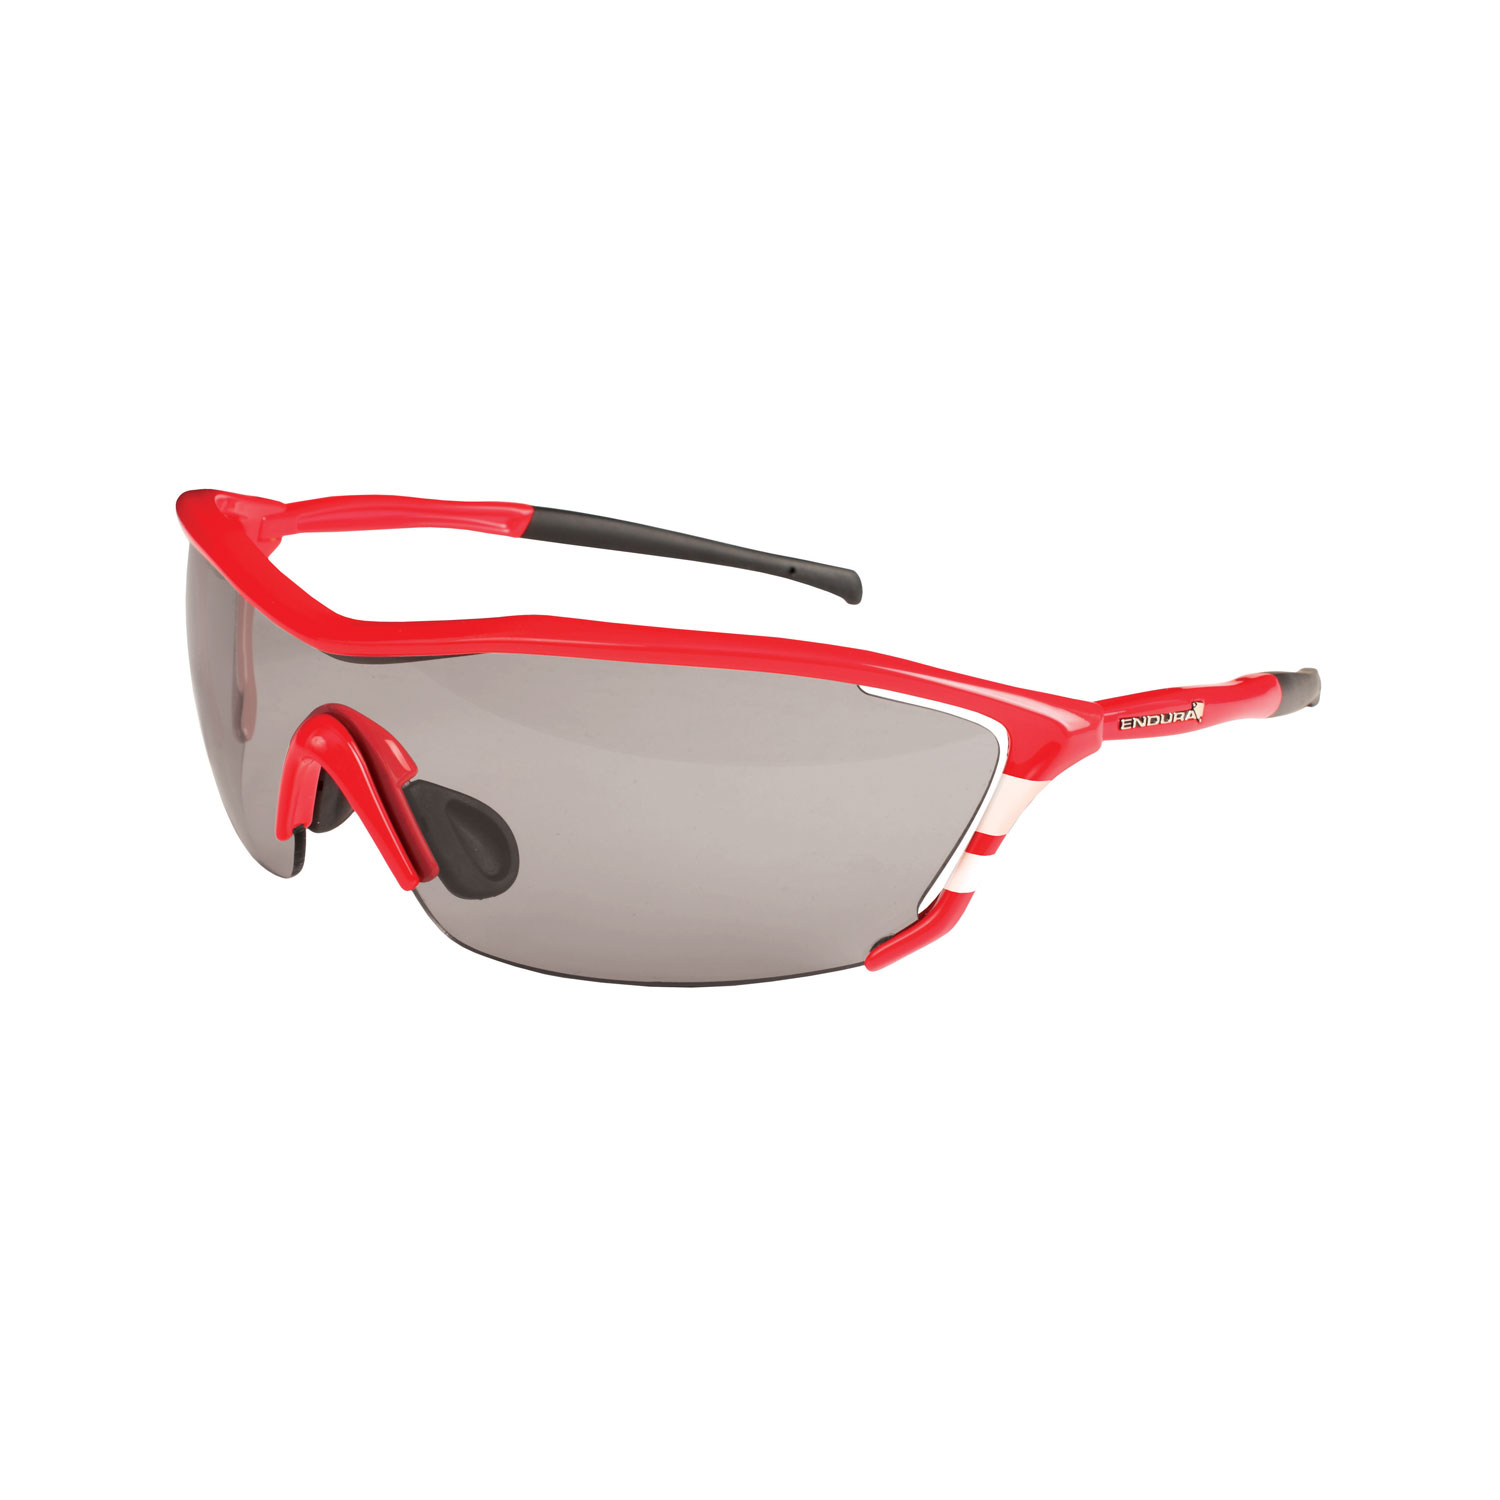 Pacu Glasses Red